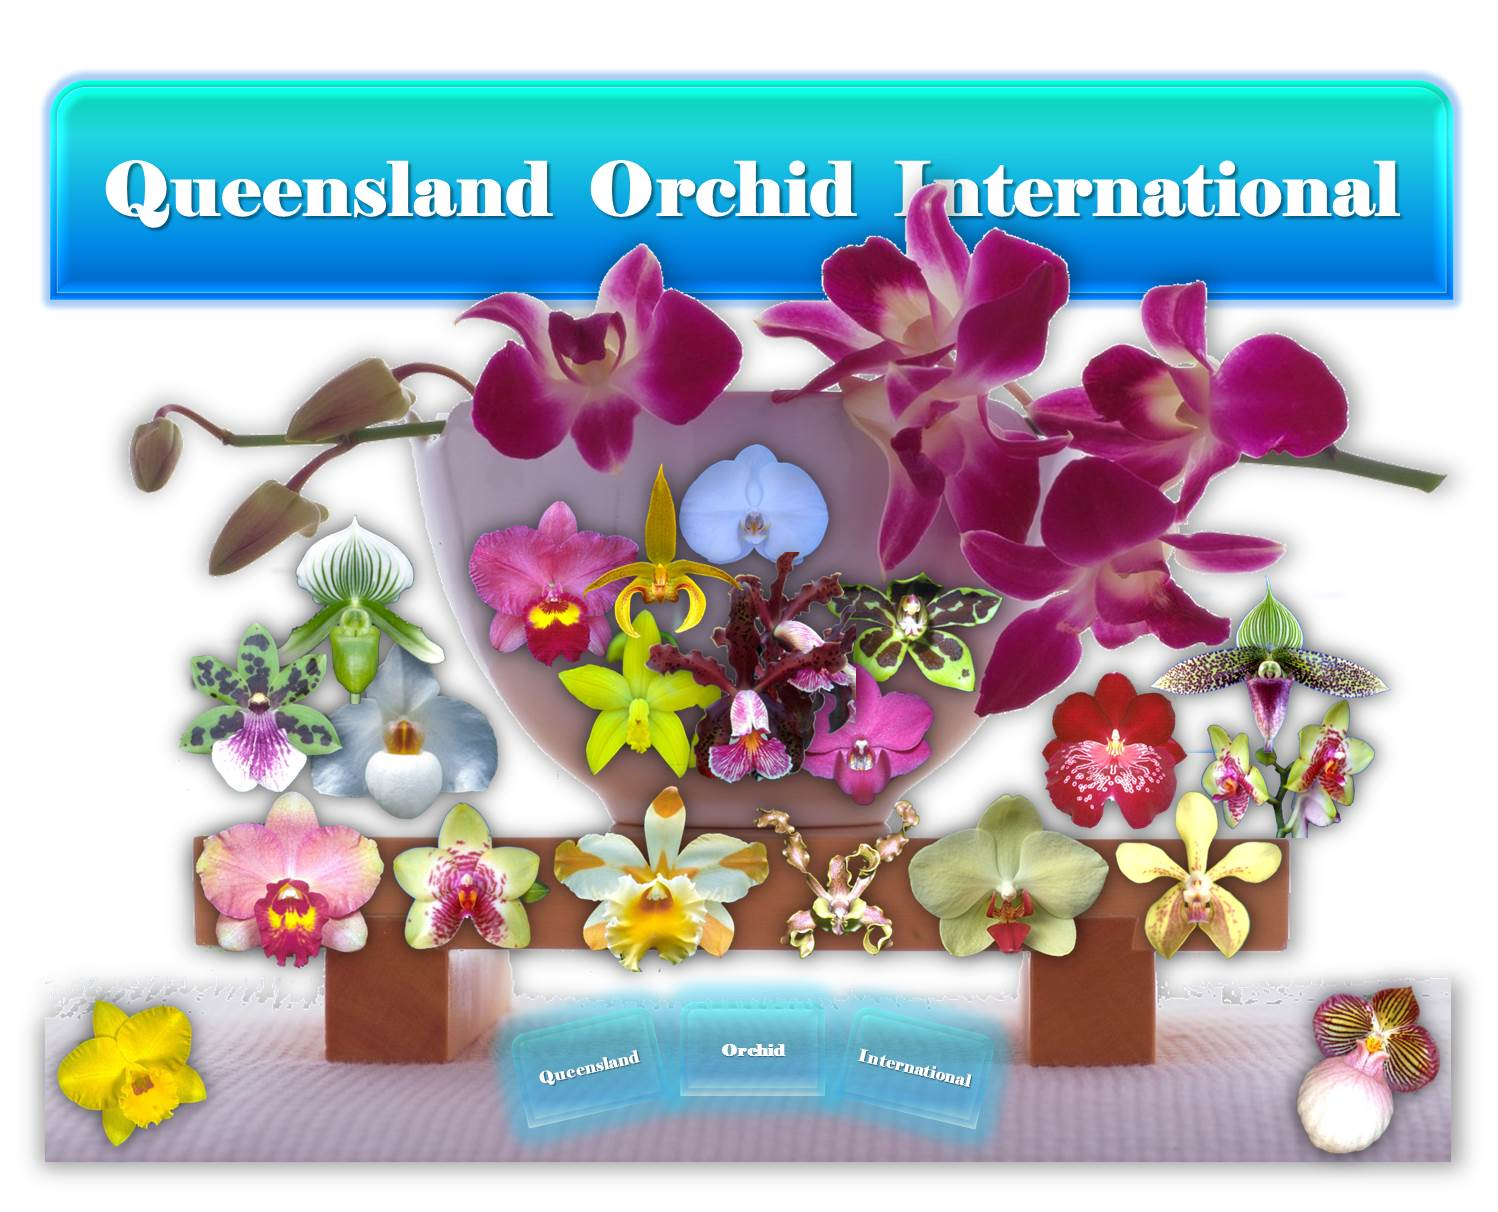 Queensland Orchid International